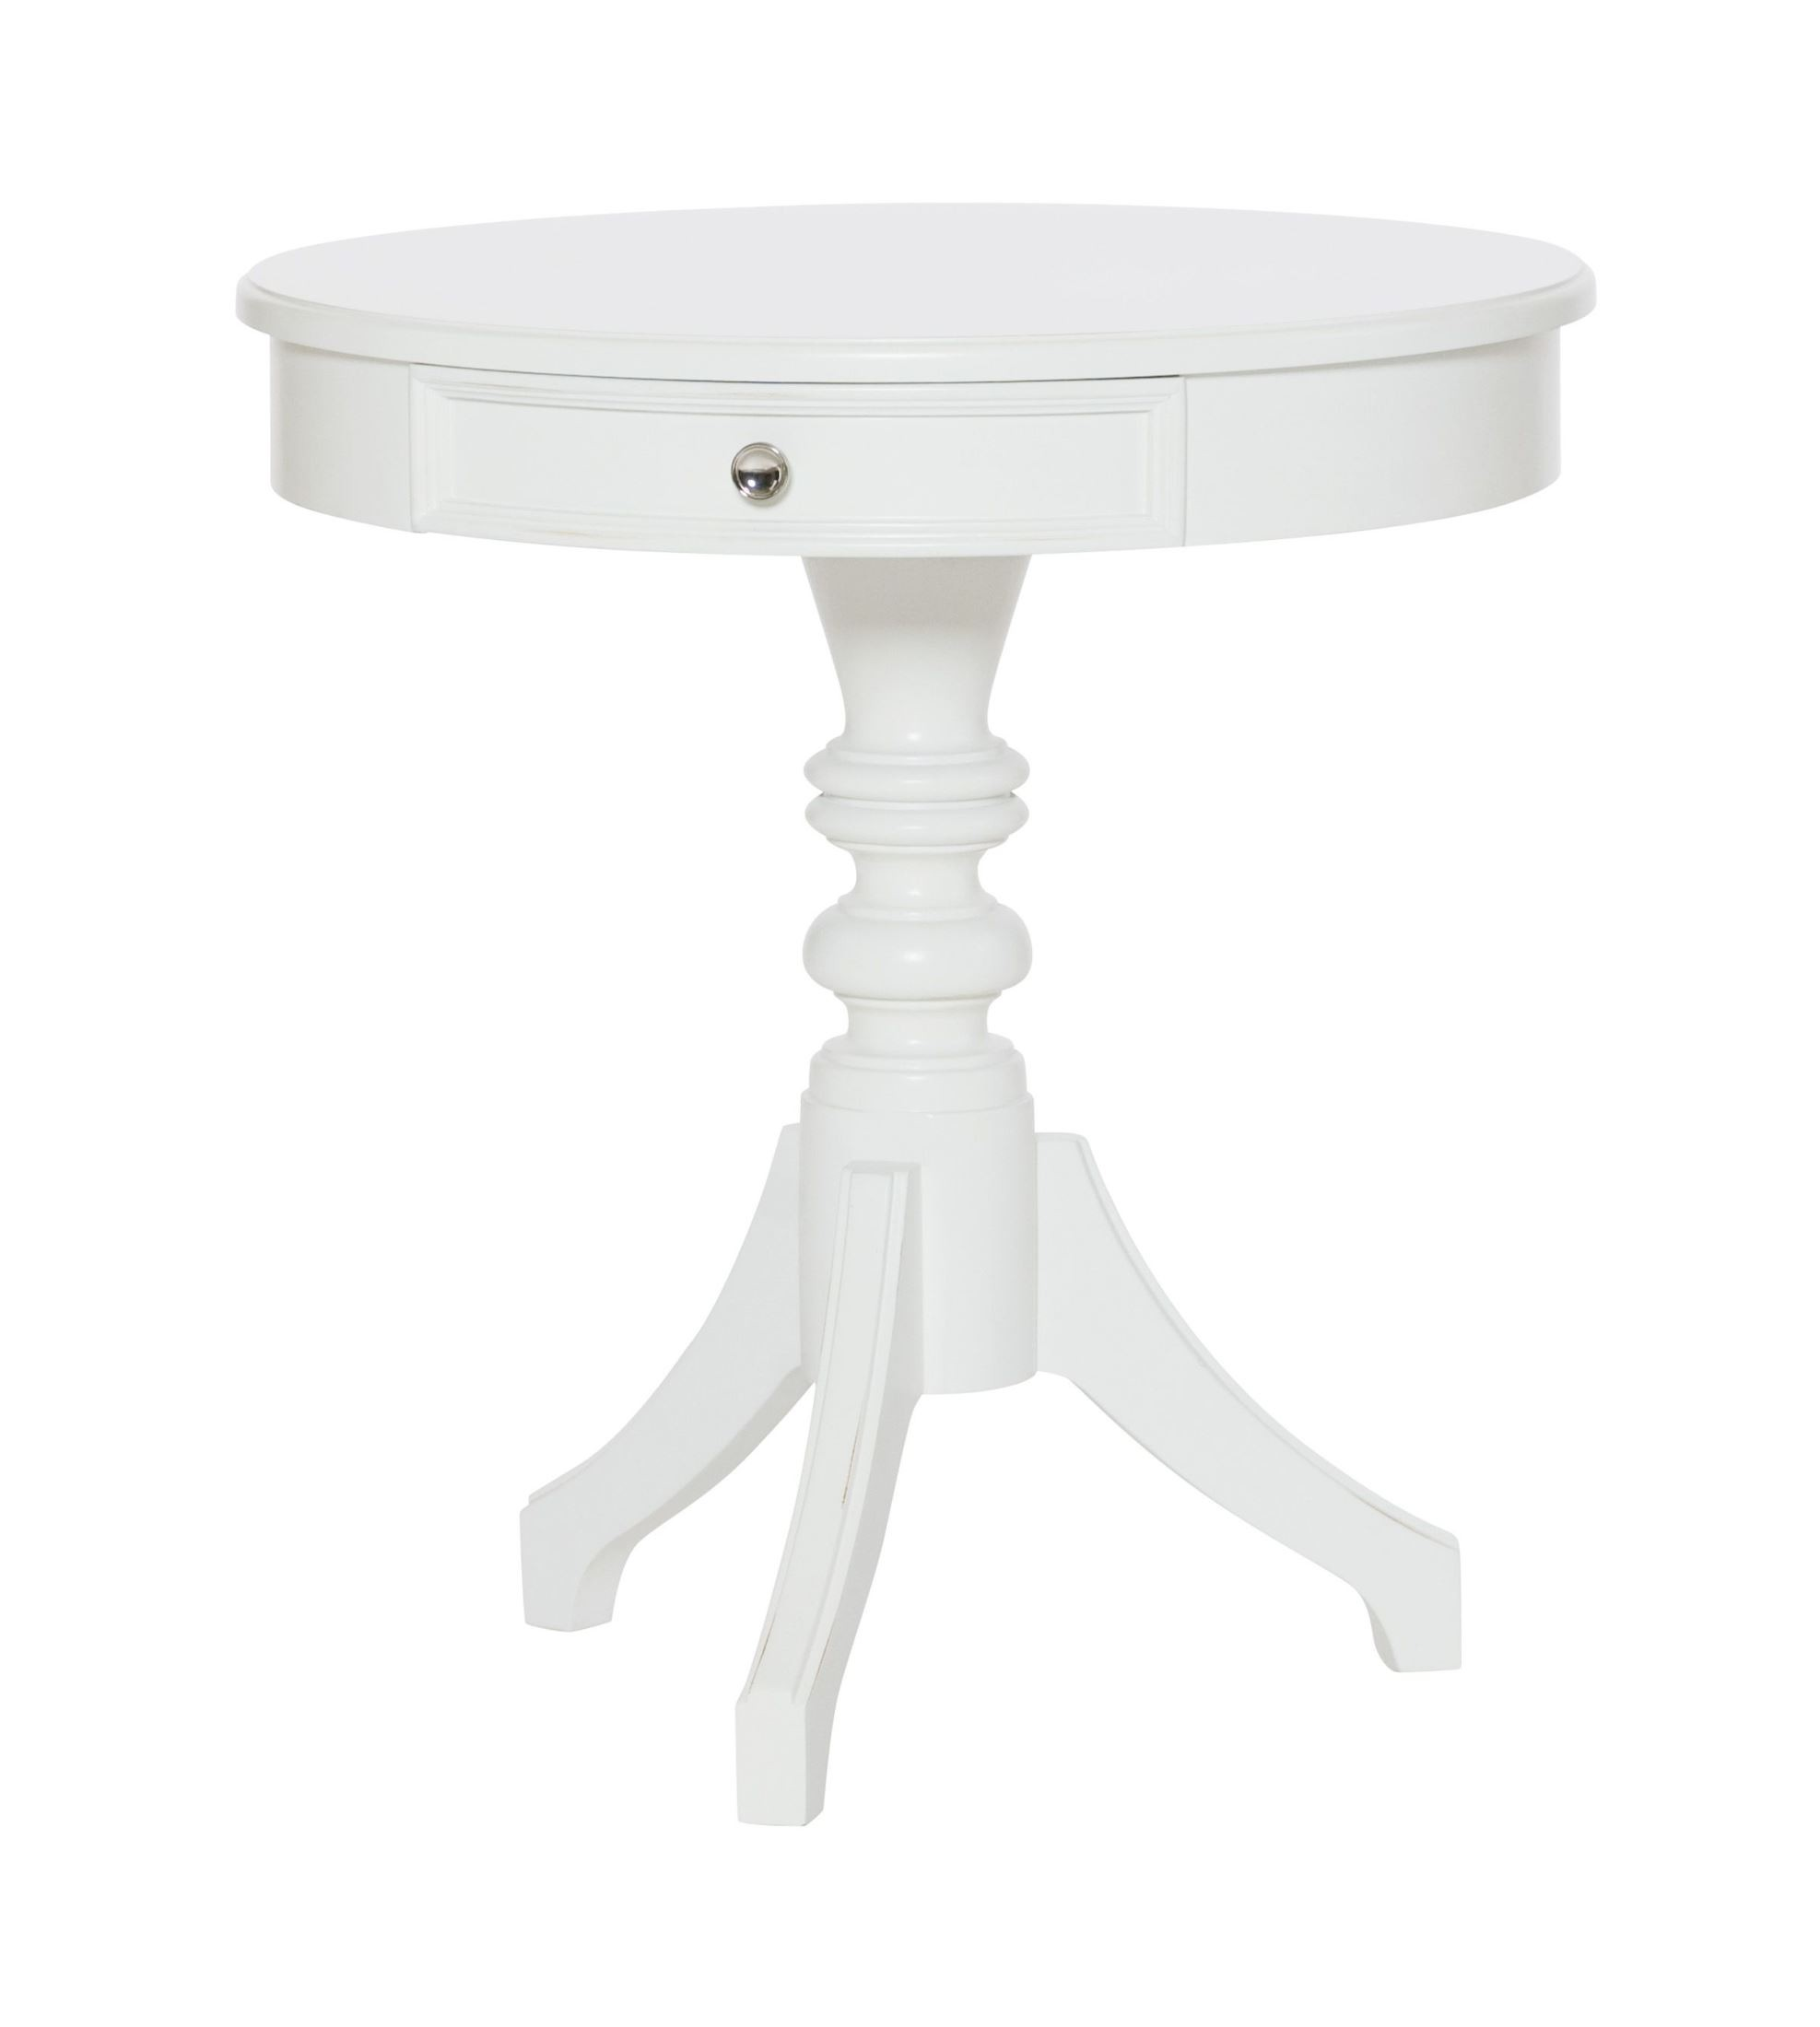 lynn haven dover white round accent table 416 916 hammary. Black Bedroom Furniture Sets. Home Design Ideas